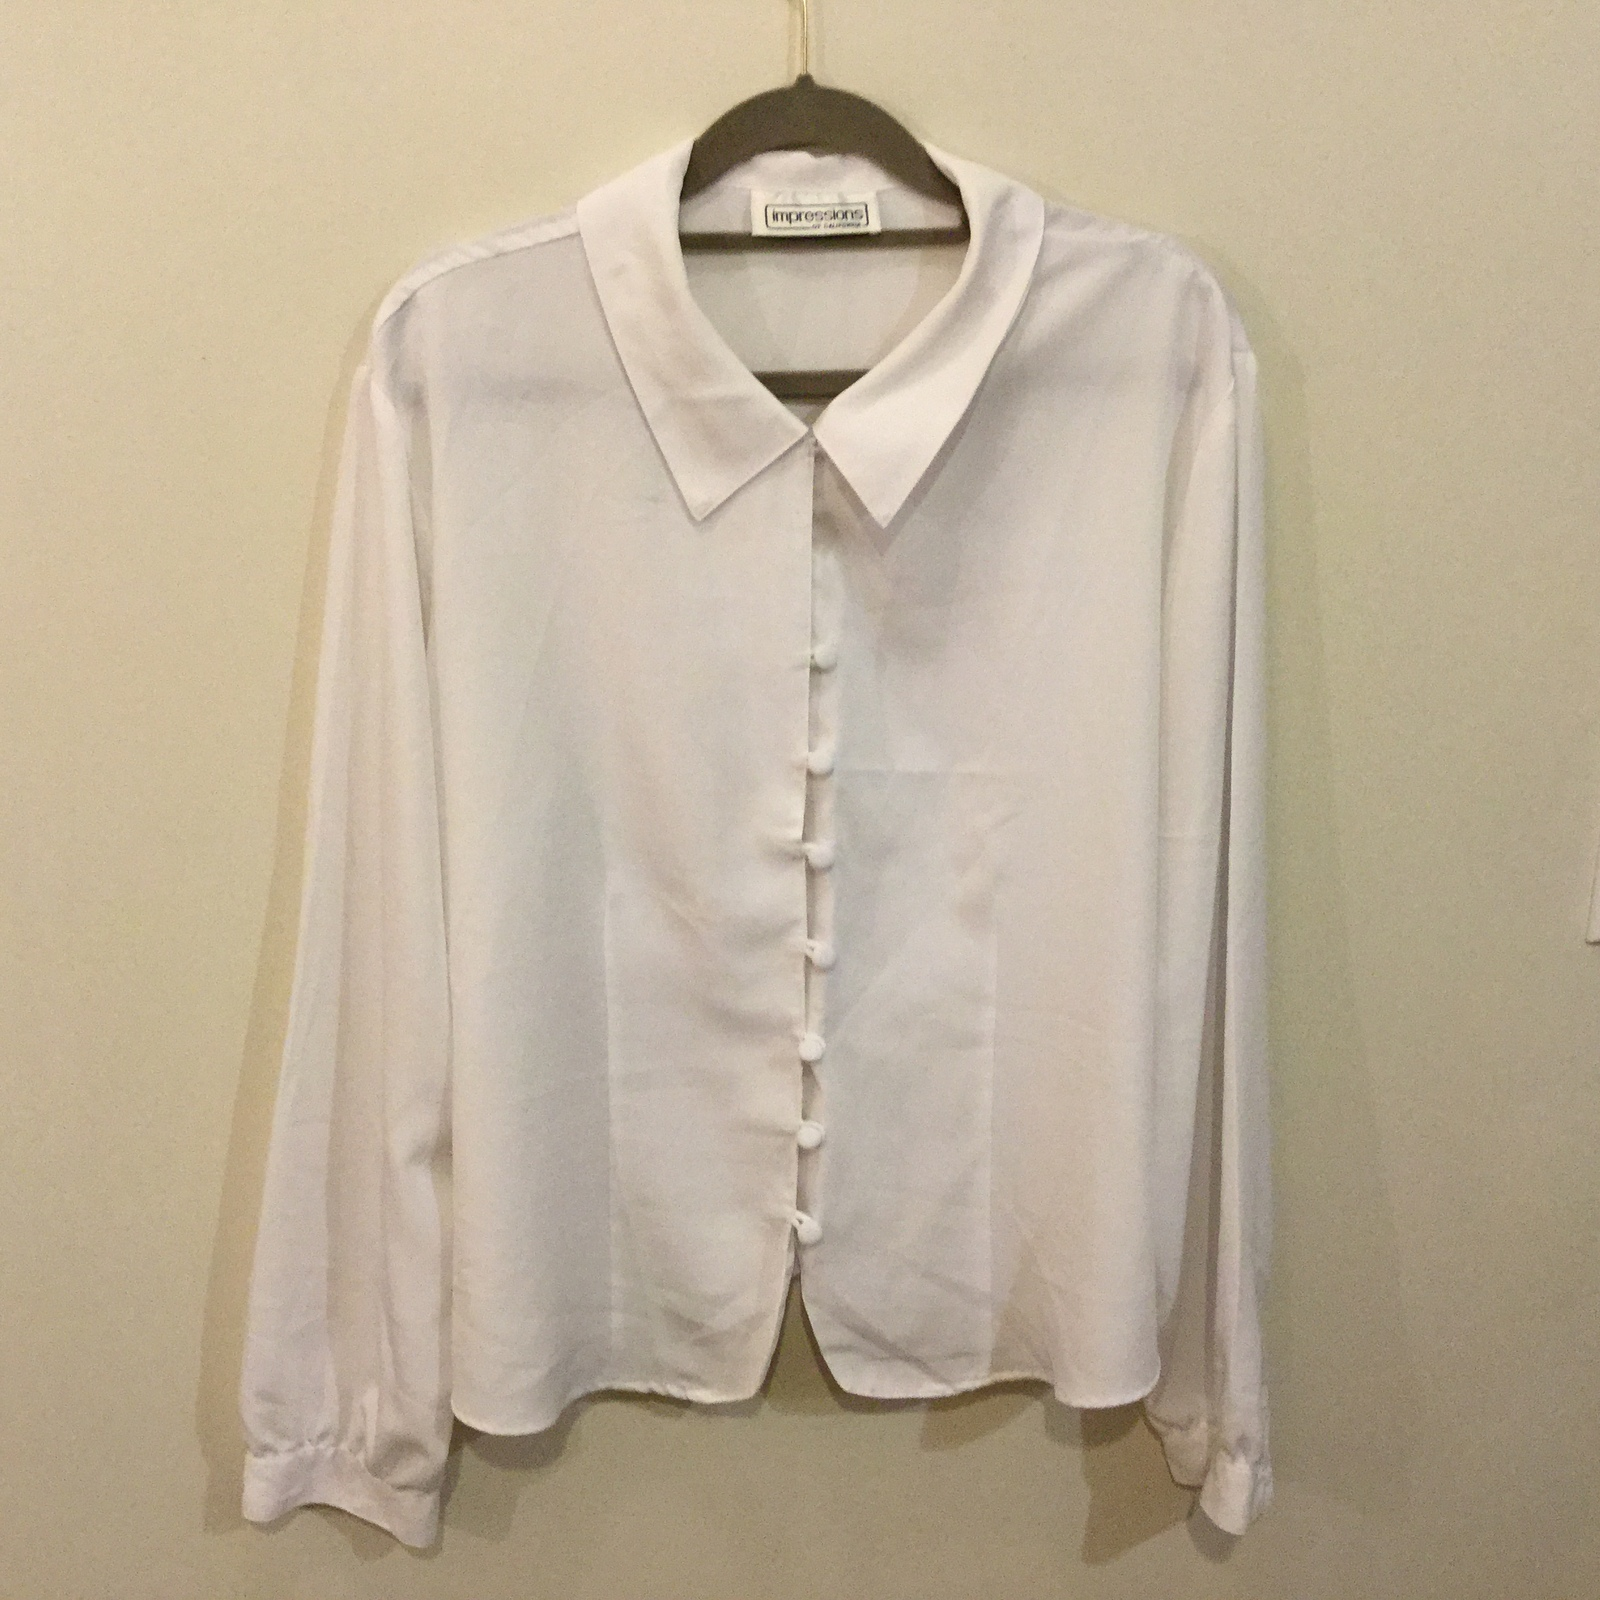 Impressions White 100% Polyester Blouse Front Fabric Covered Buttons, size 16